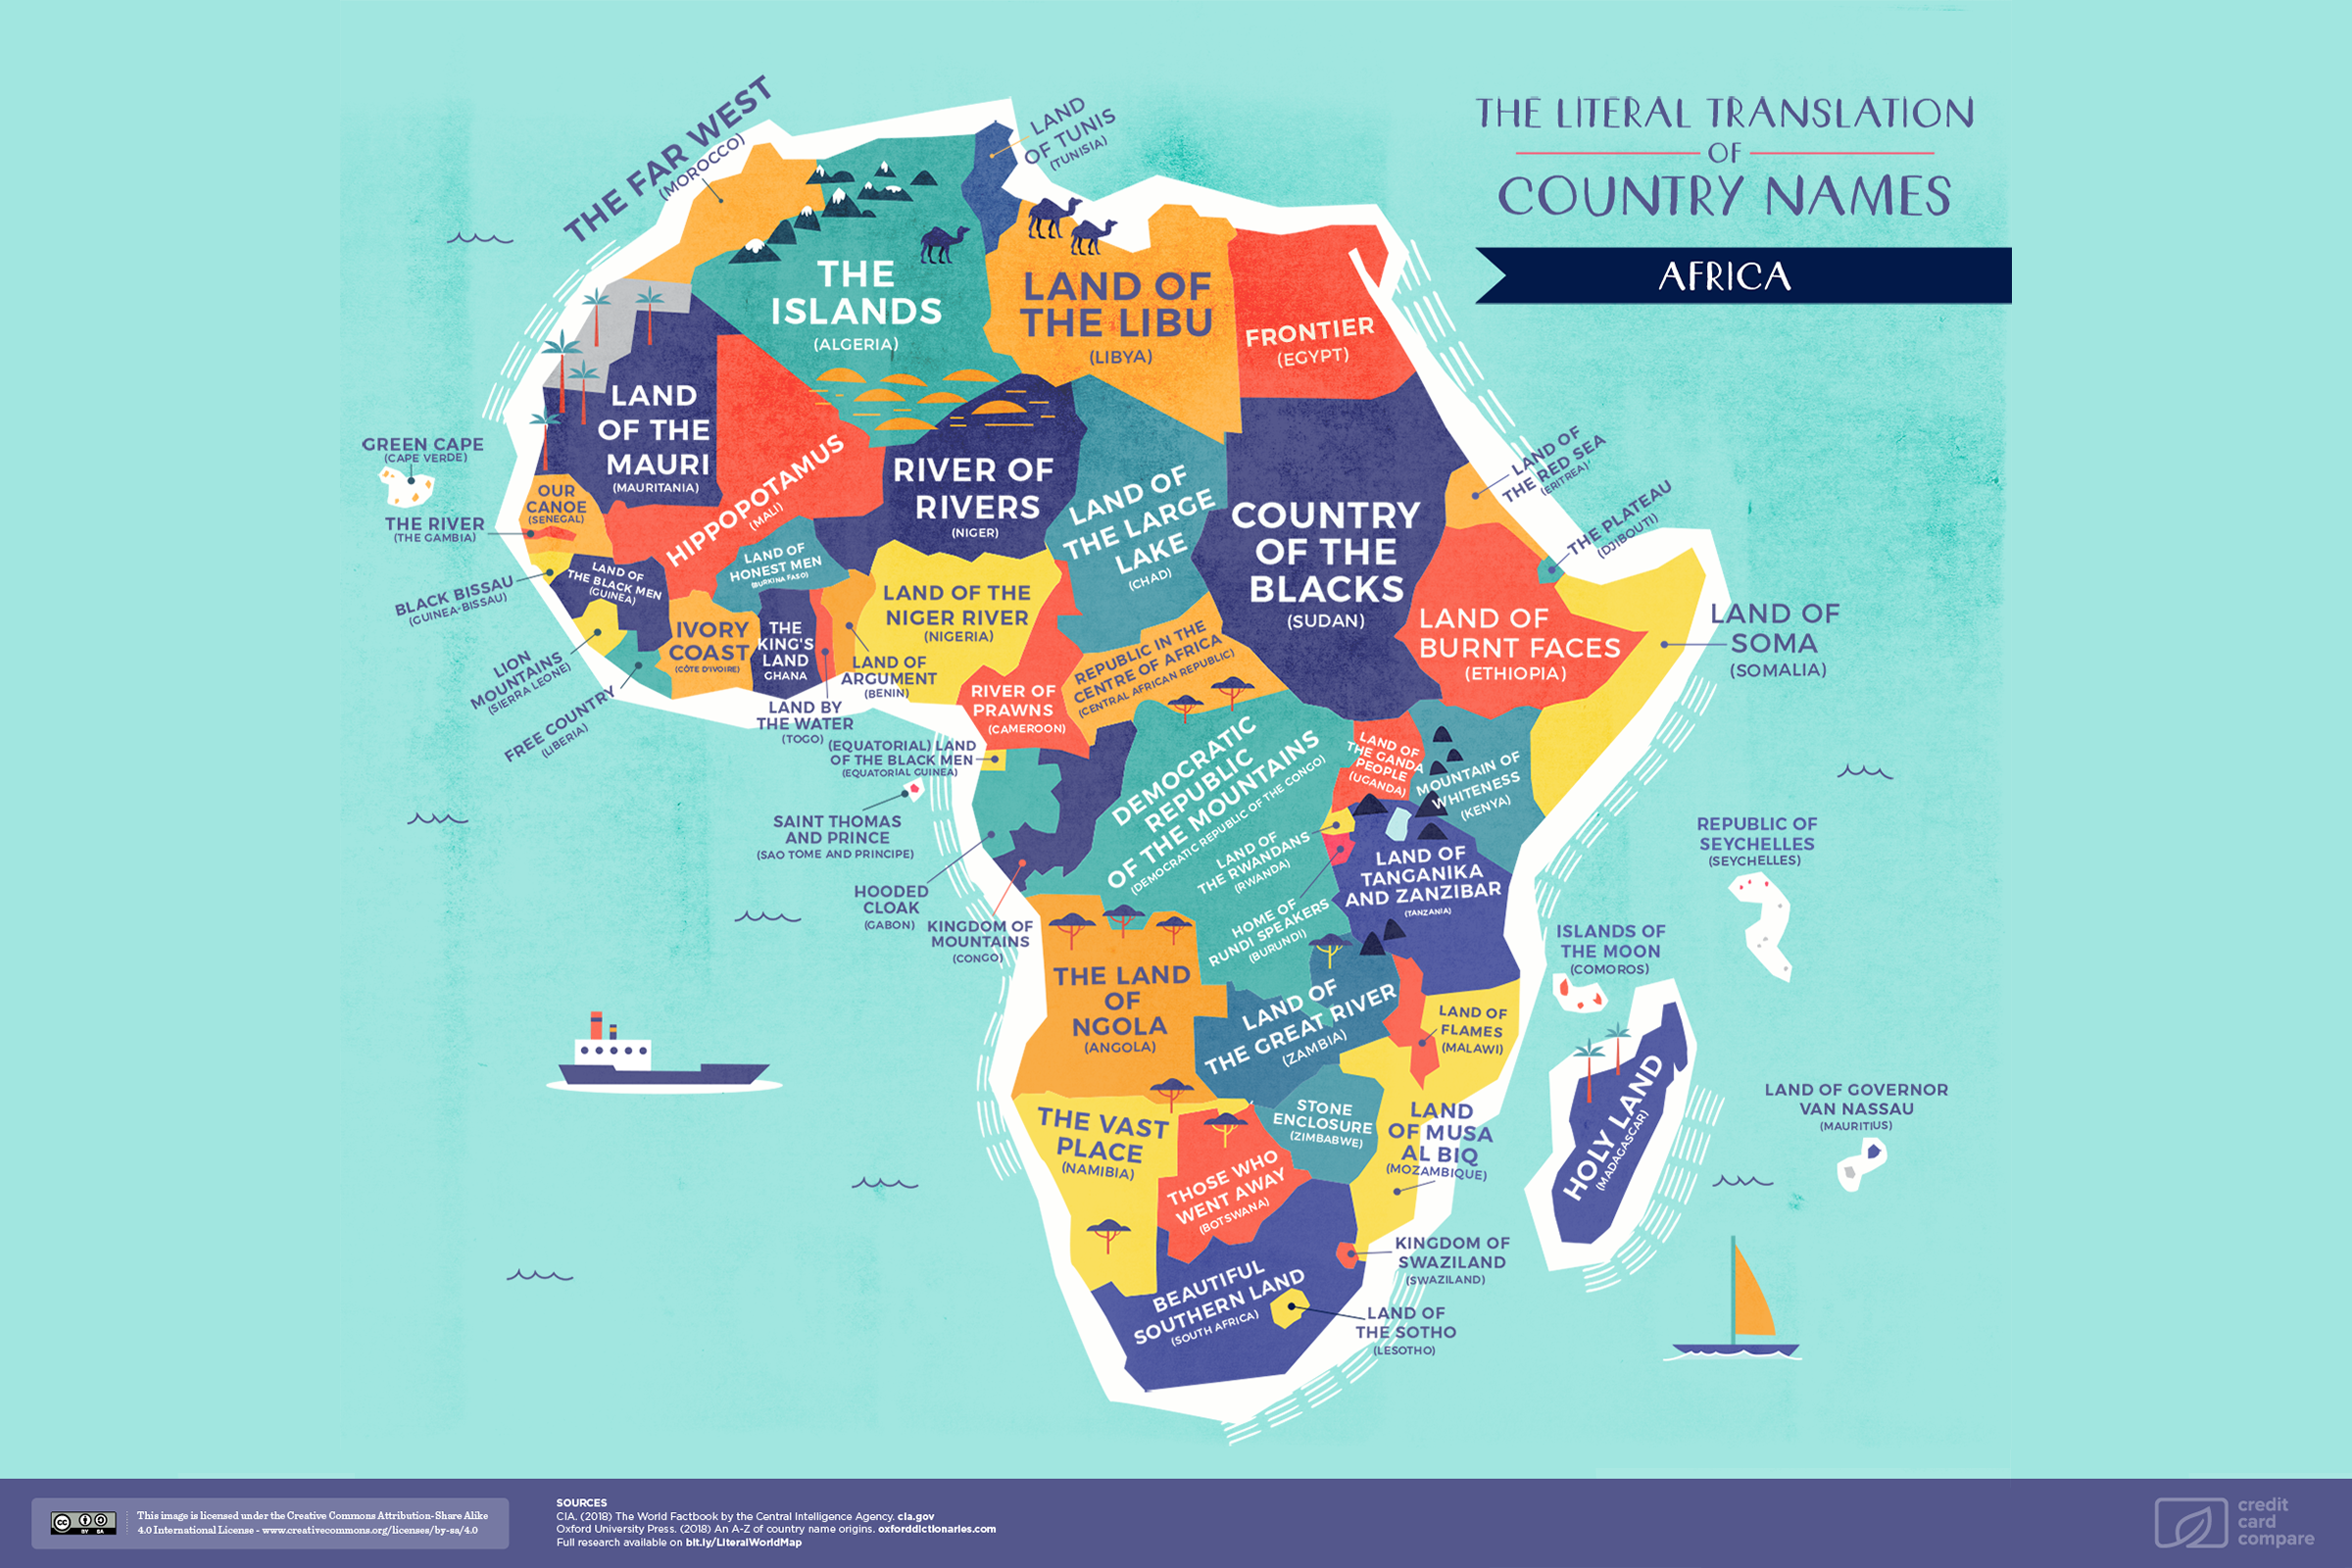 An Incredible World Map That Plots the Literal Translation of Every